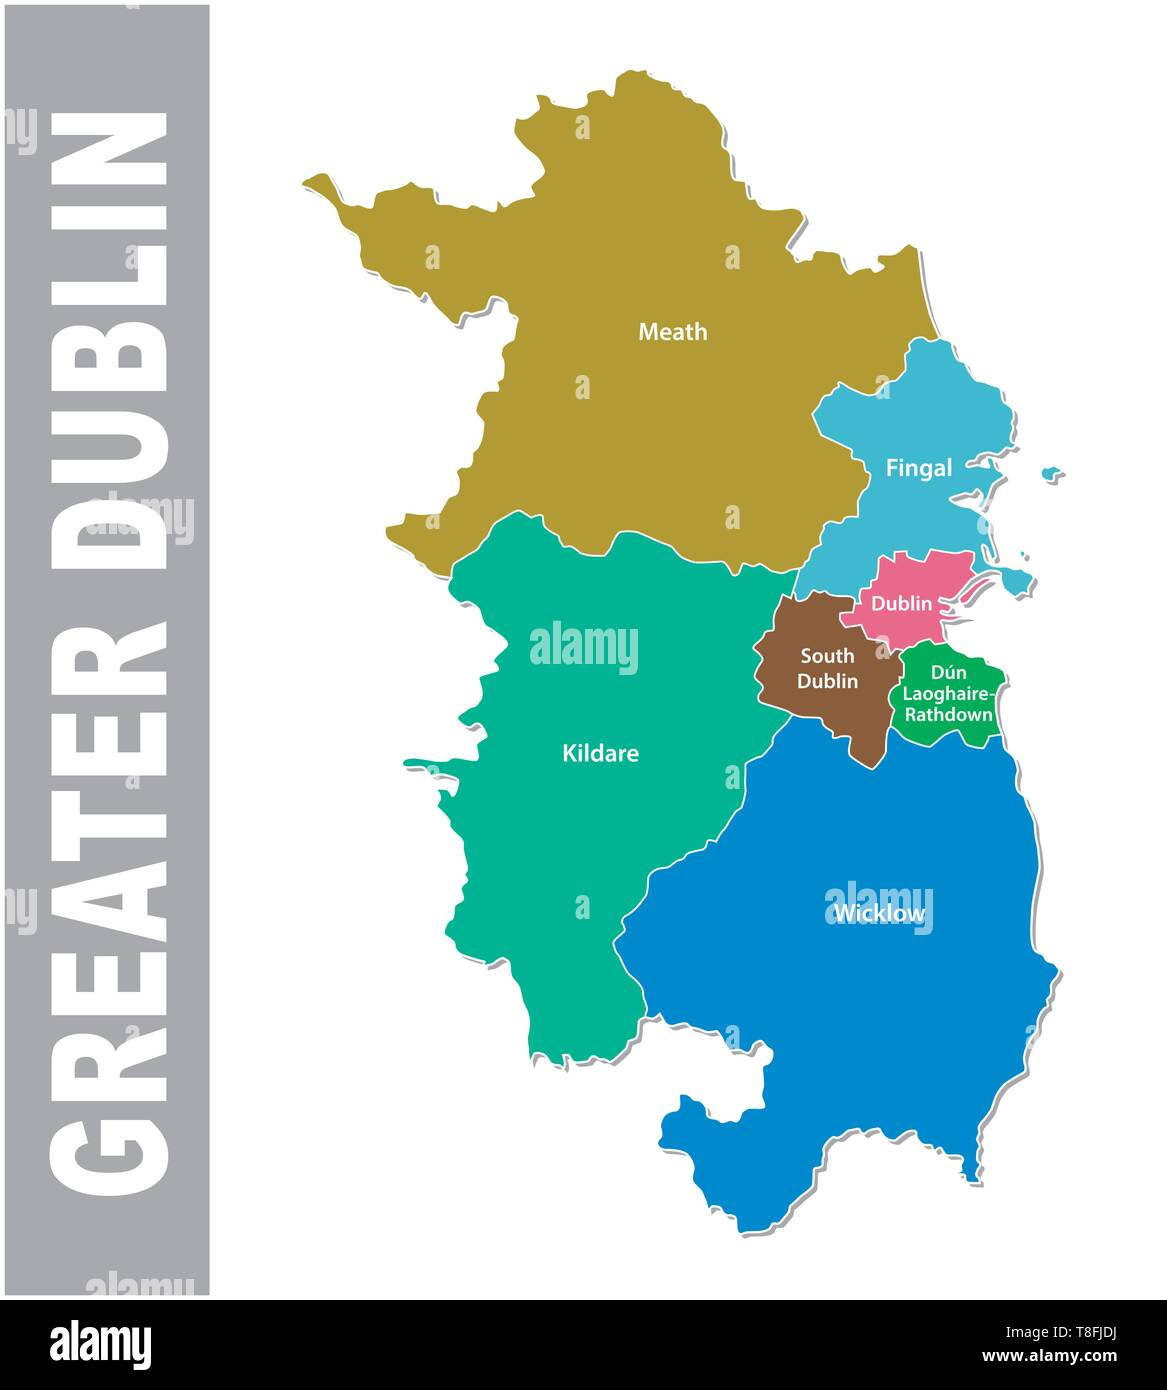 Map Of Dublin High Resolution Stock Photography And Images Alamy Województwo wielkopolskie (greater poland voivodeship). https www alamy com greater dublin area administrative and political vector mapeps image246206174 html